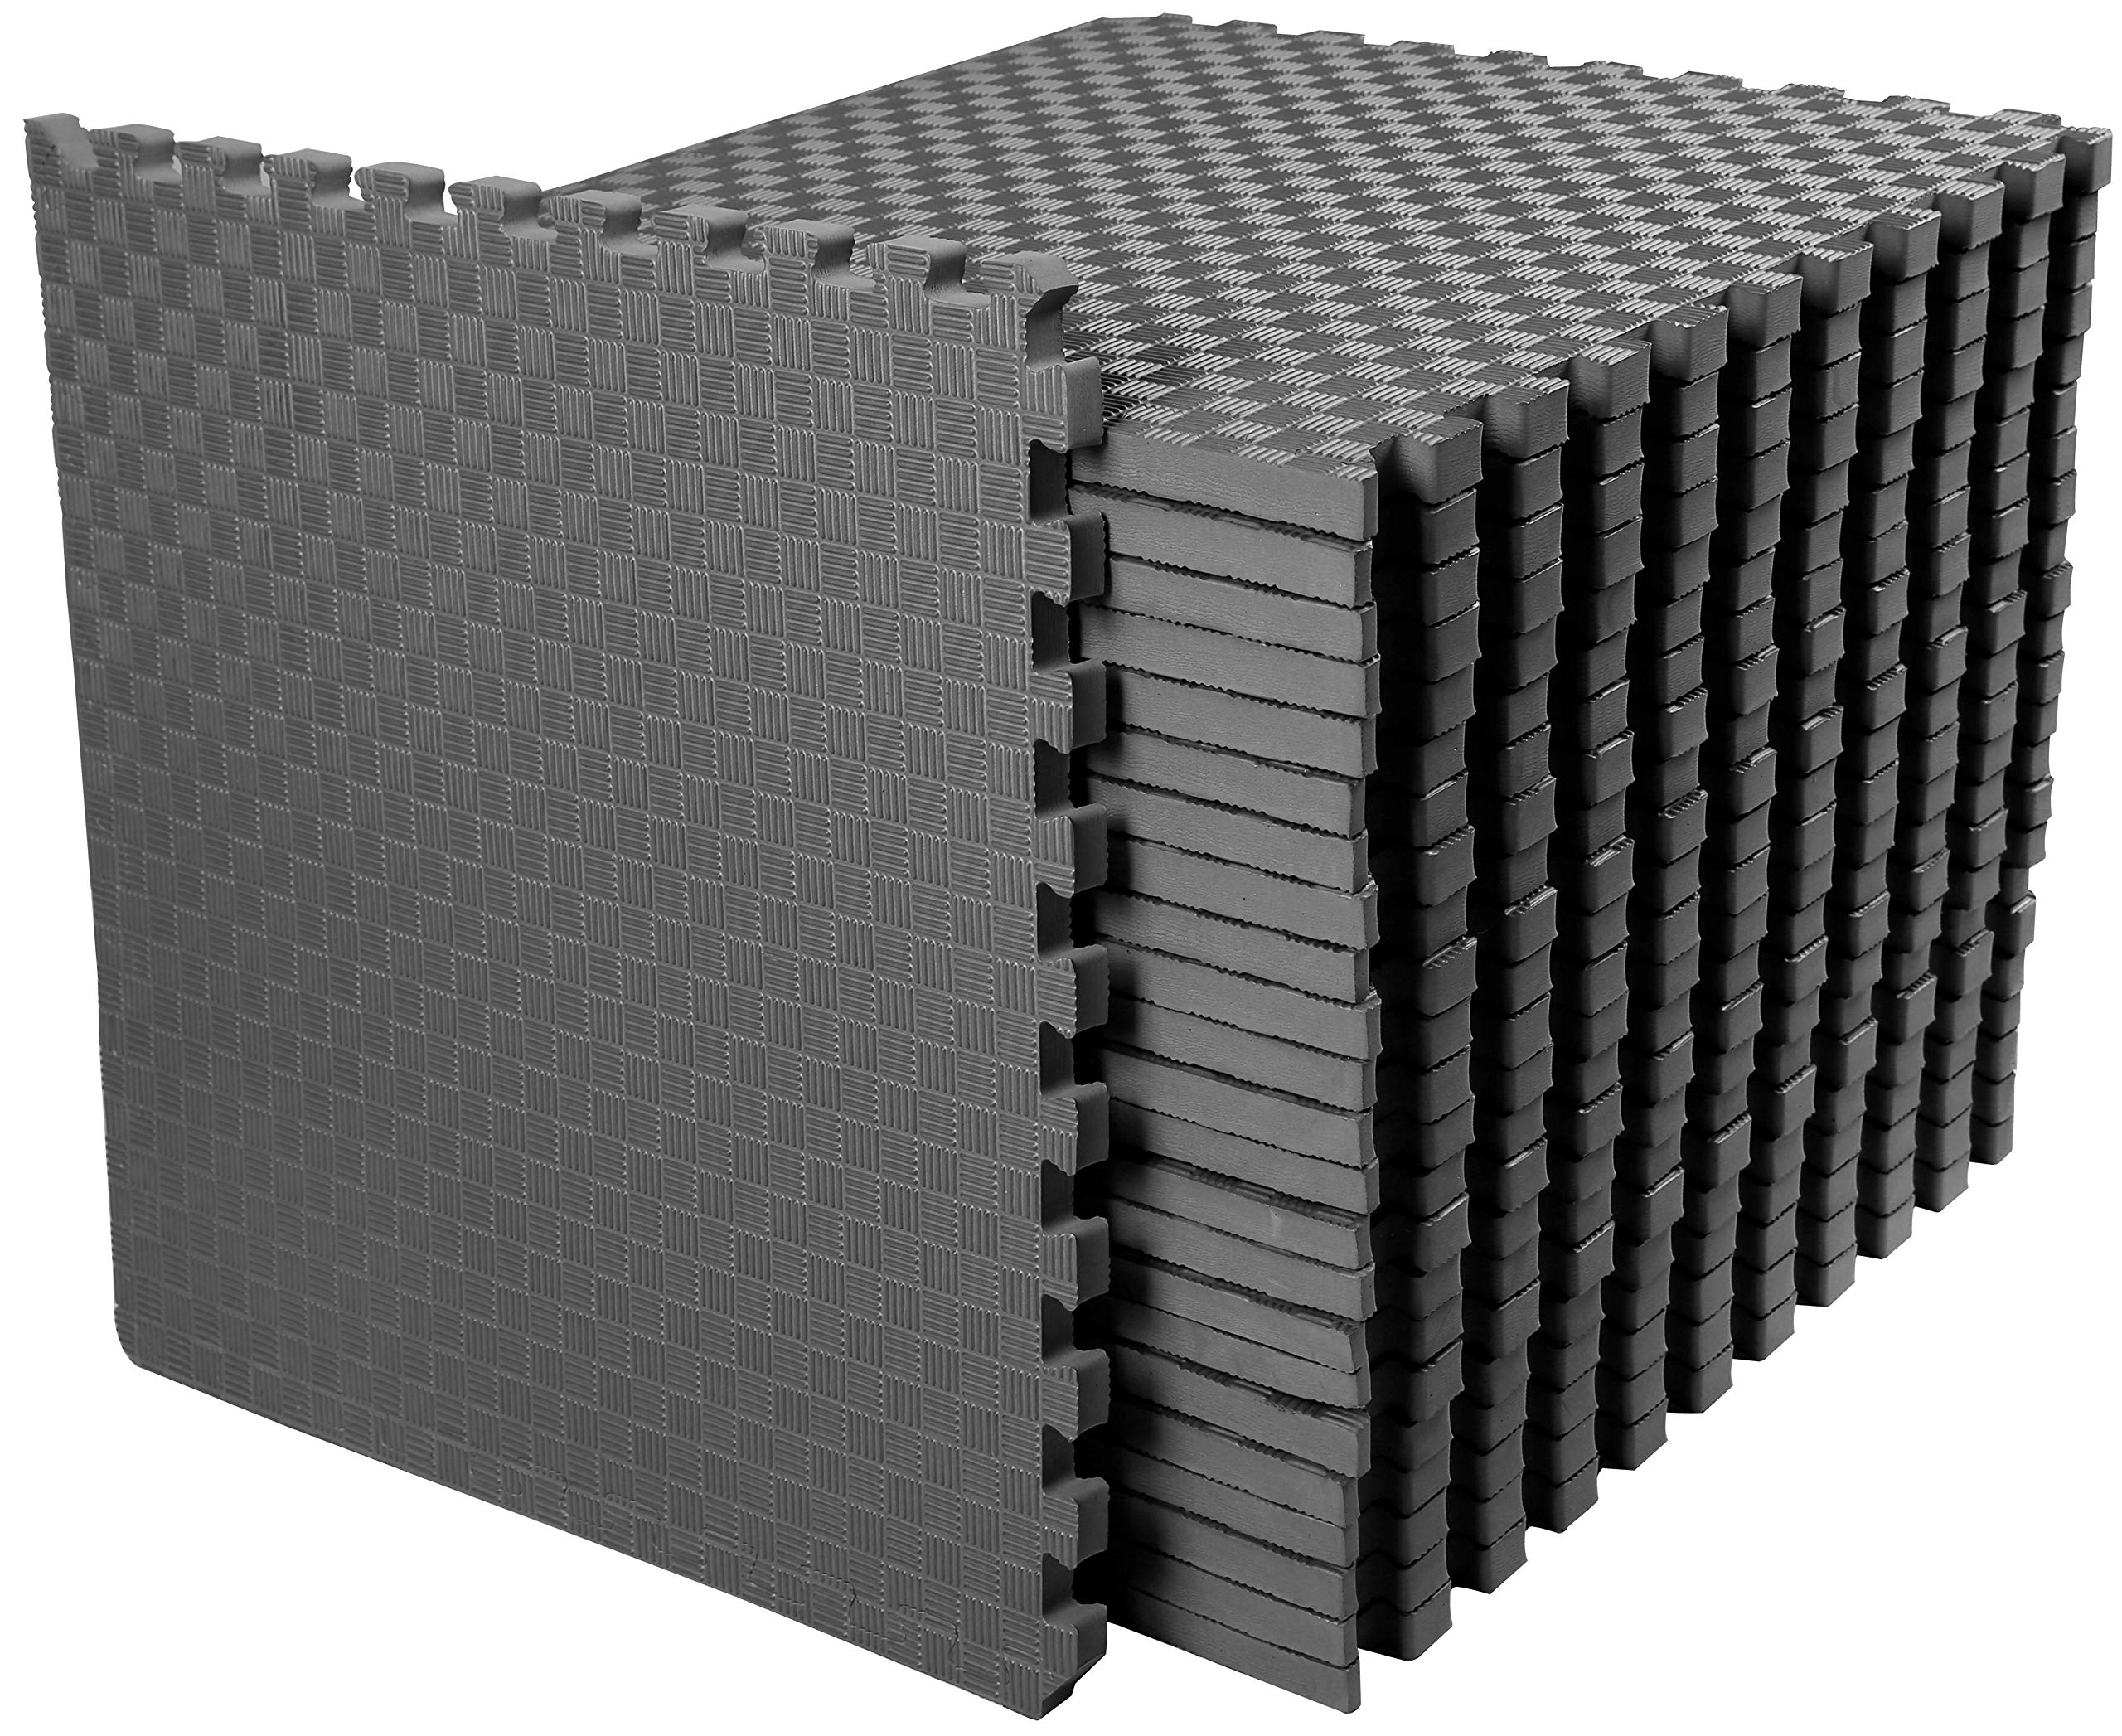 BalanceFrom 1'' Extra Thick Puzzle Exercise Mat with EVA Foam Interlocking Tiles for MMA, Exercise, Gymnastics and Home Gym Protective Flooring, 72 Square Feet (Gray)